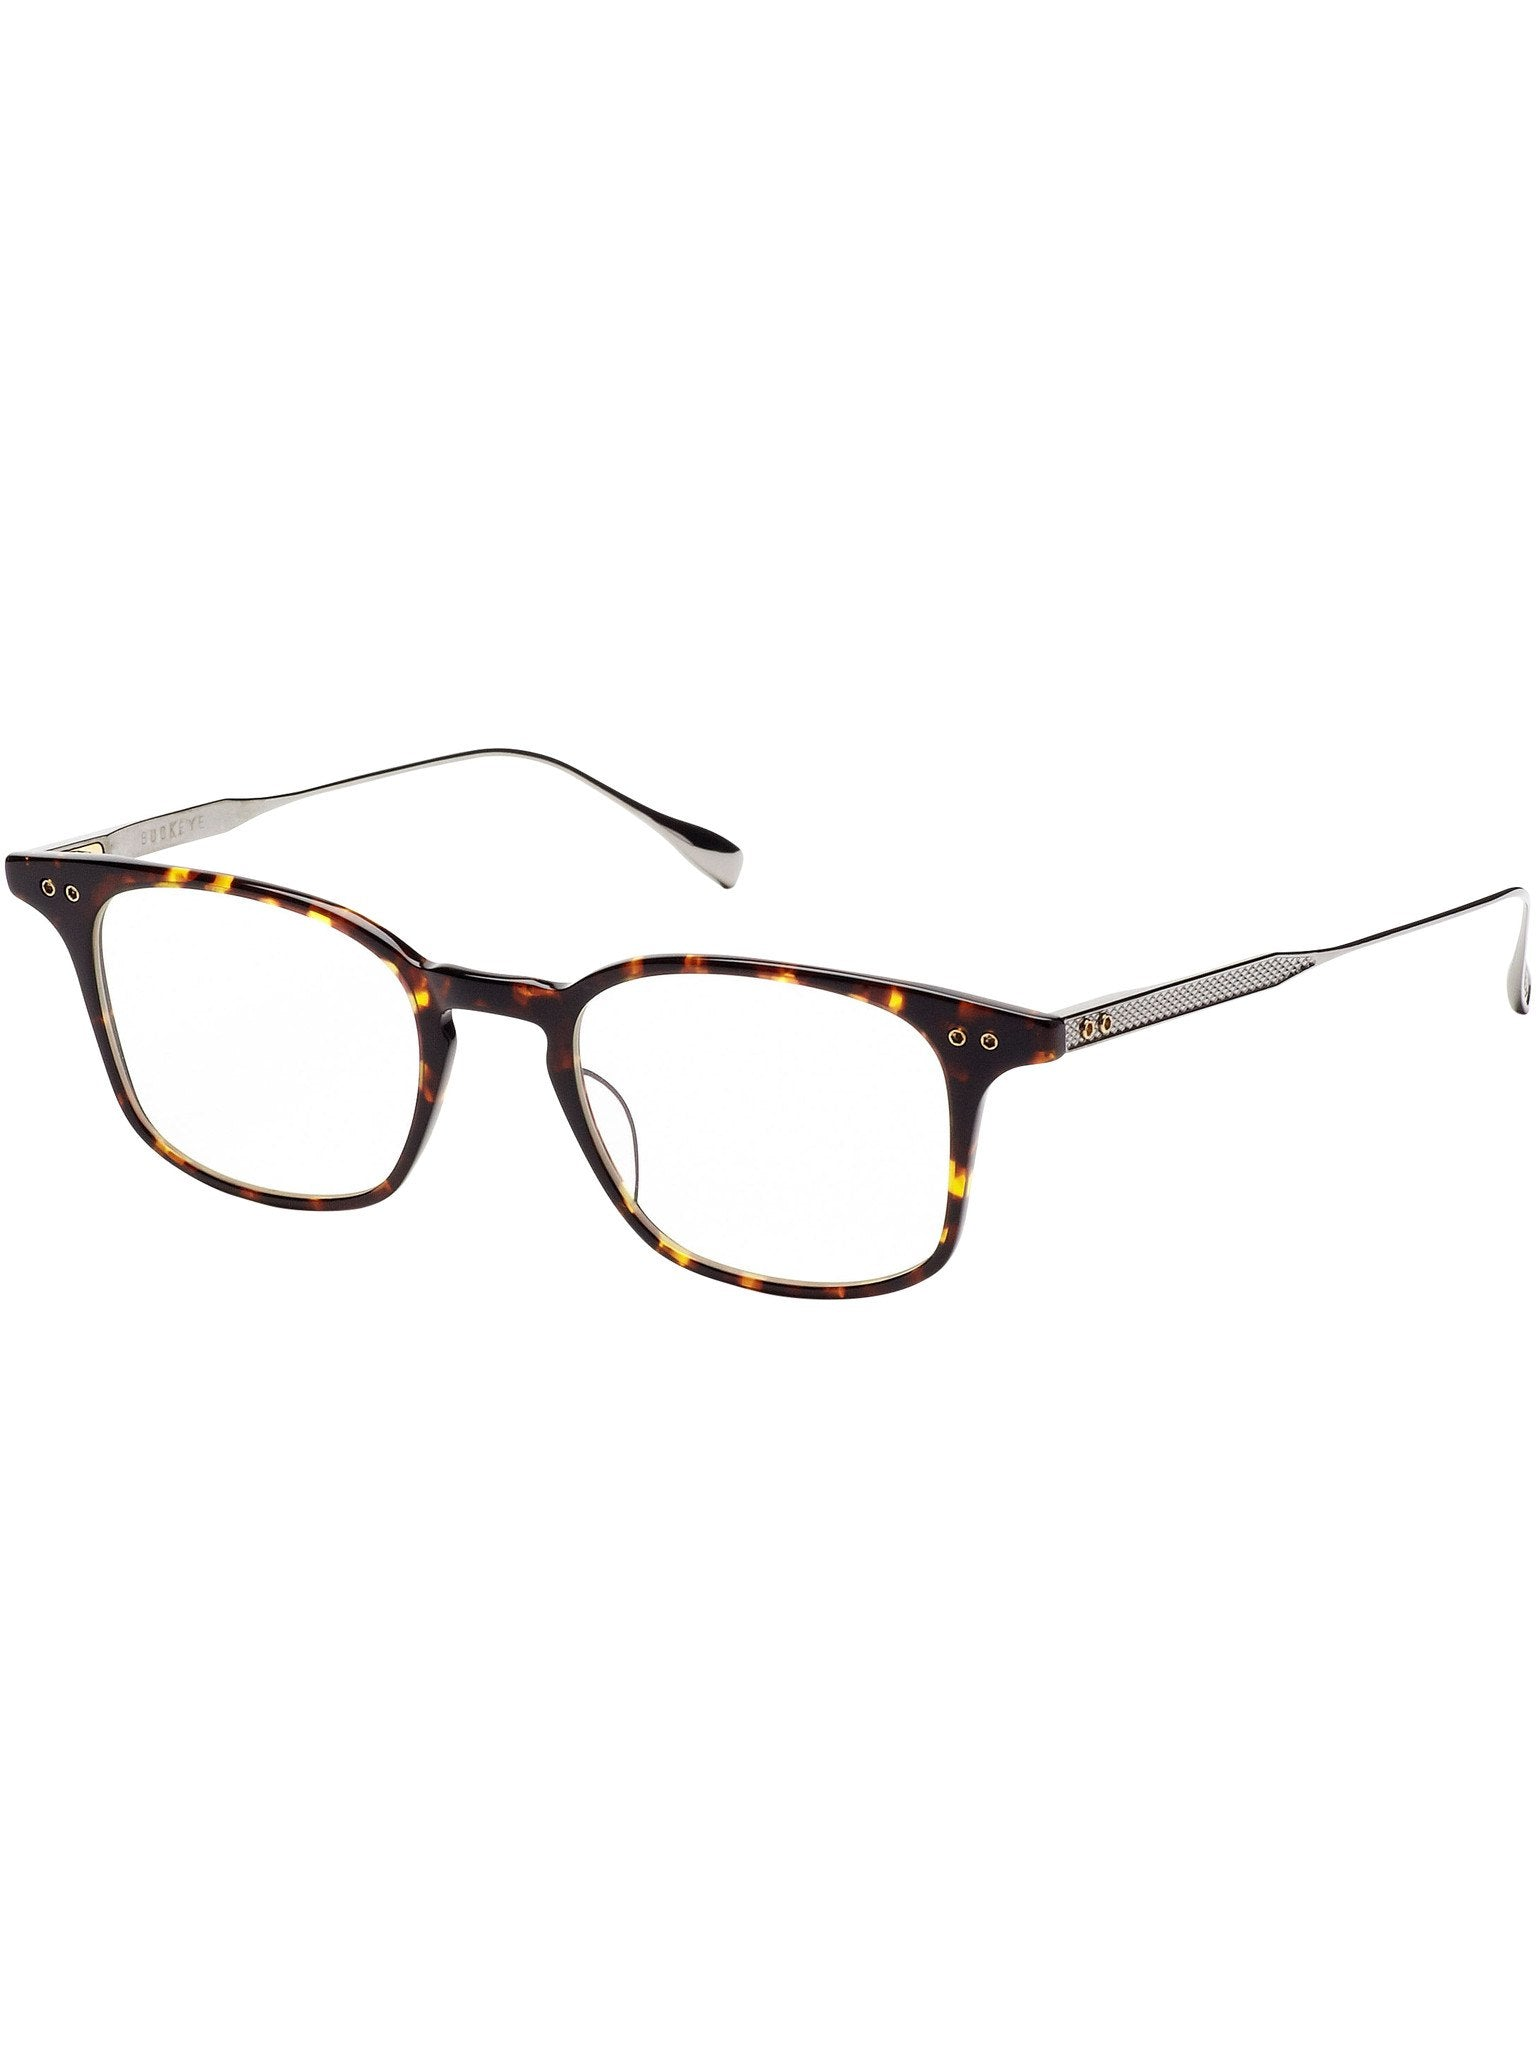 Optical Frame - Dita Buckeye DRX-2072-B Glasses